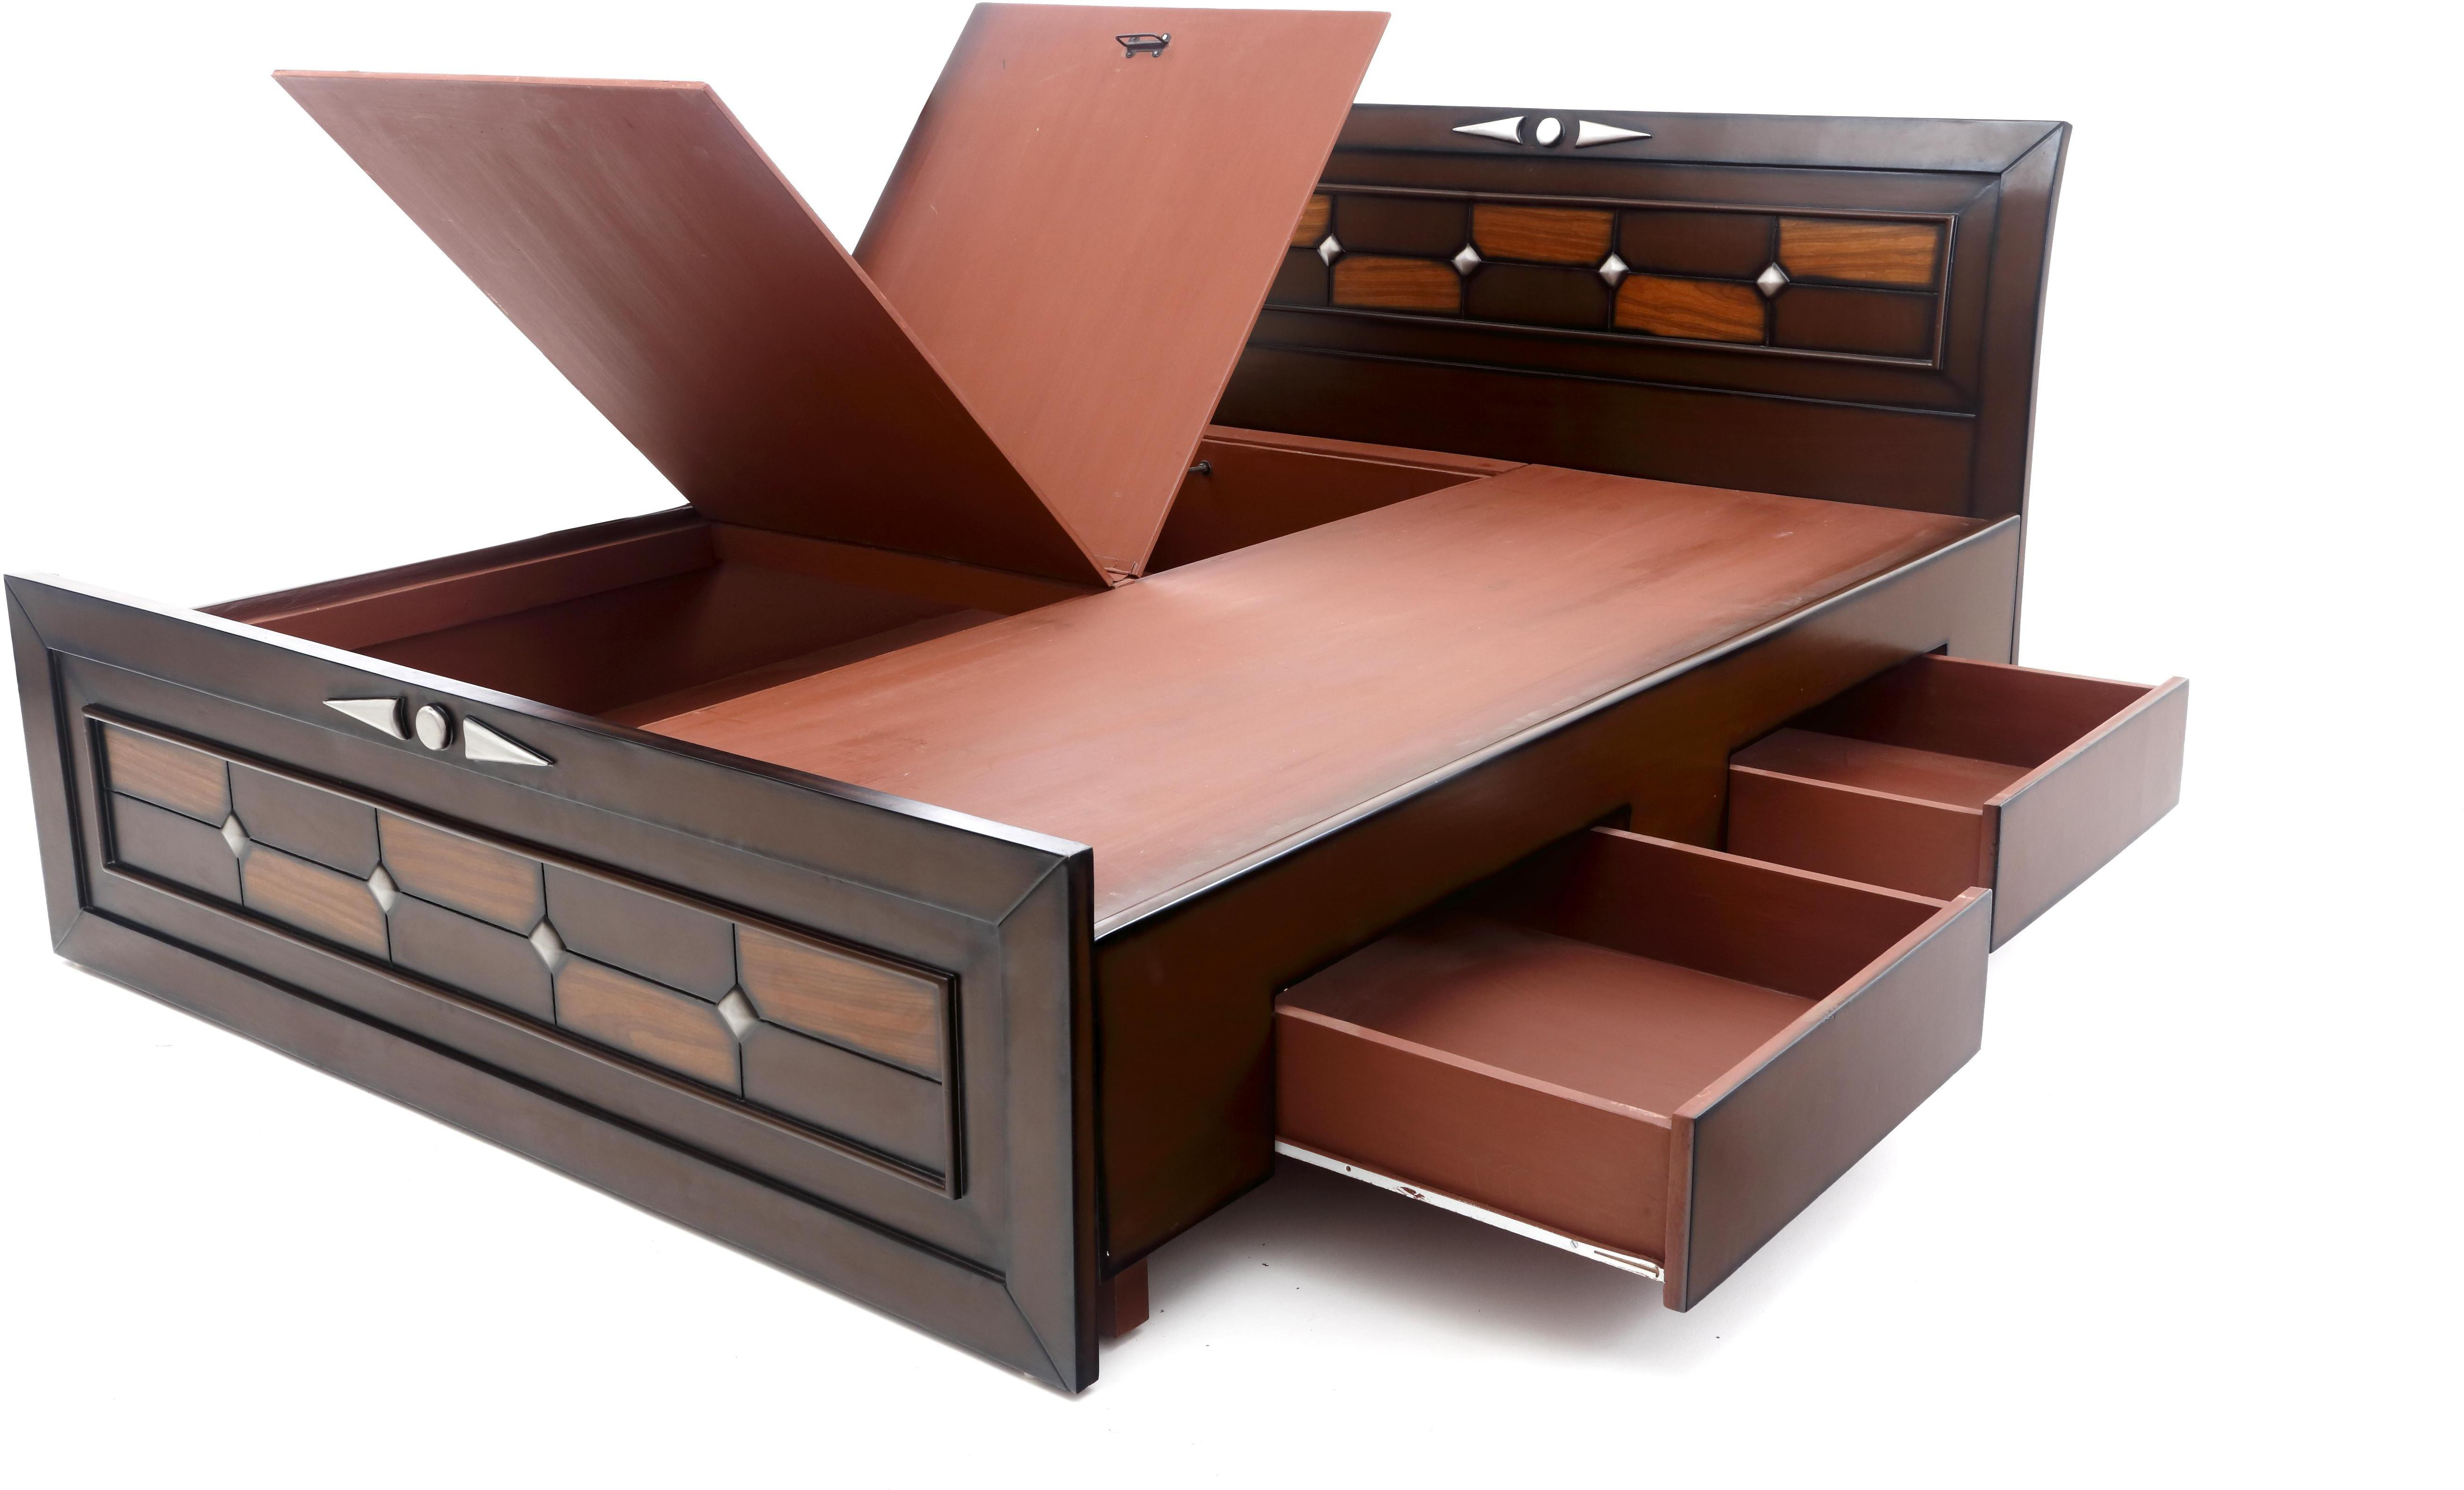 furnicity engineered wood king bed with color